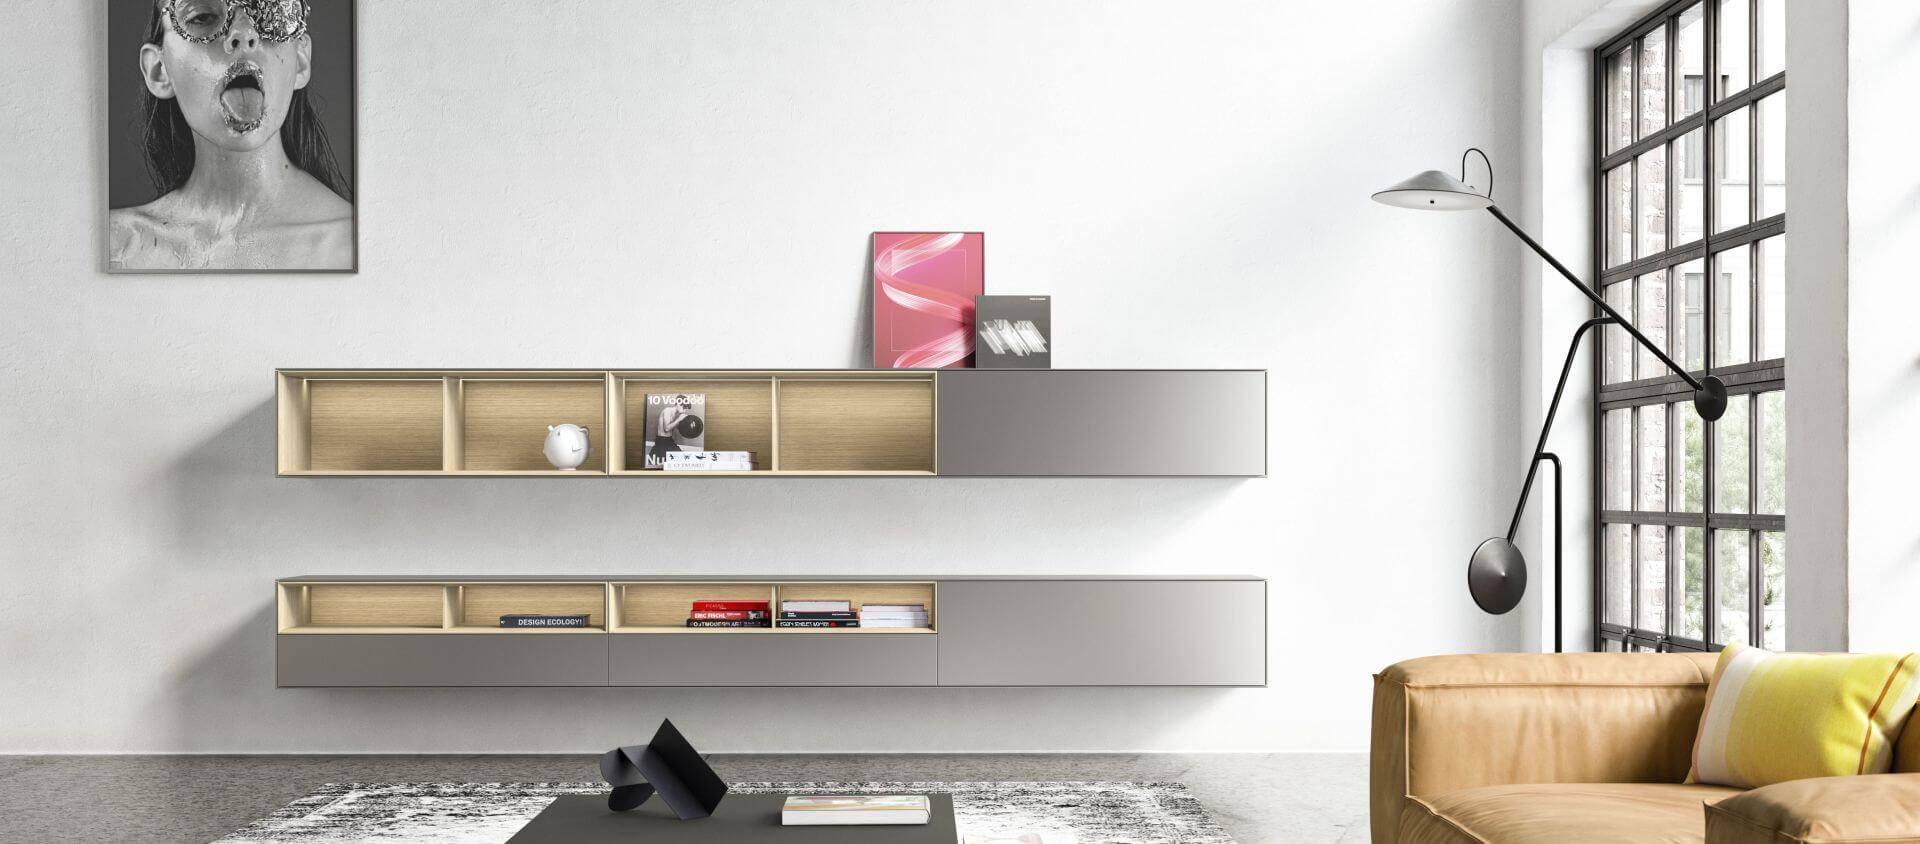 Modern customized furniture_SOMA_shelf_Kettnaker_modern living_design furniture